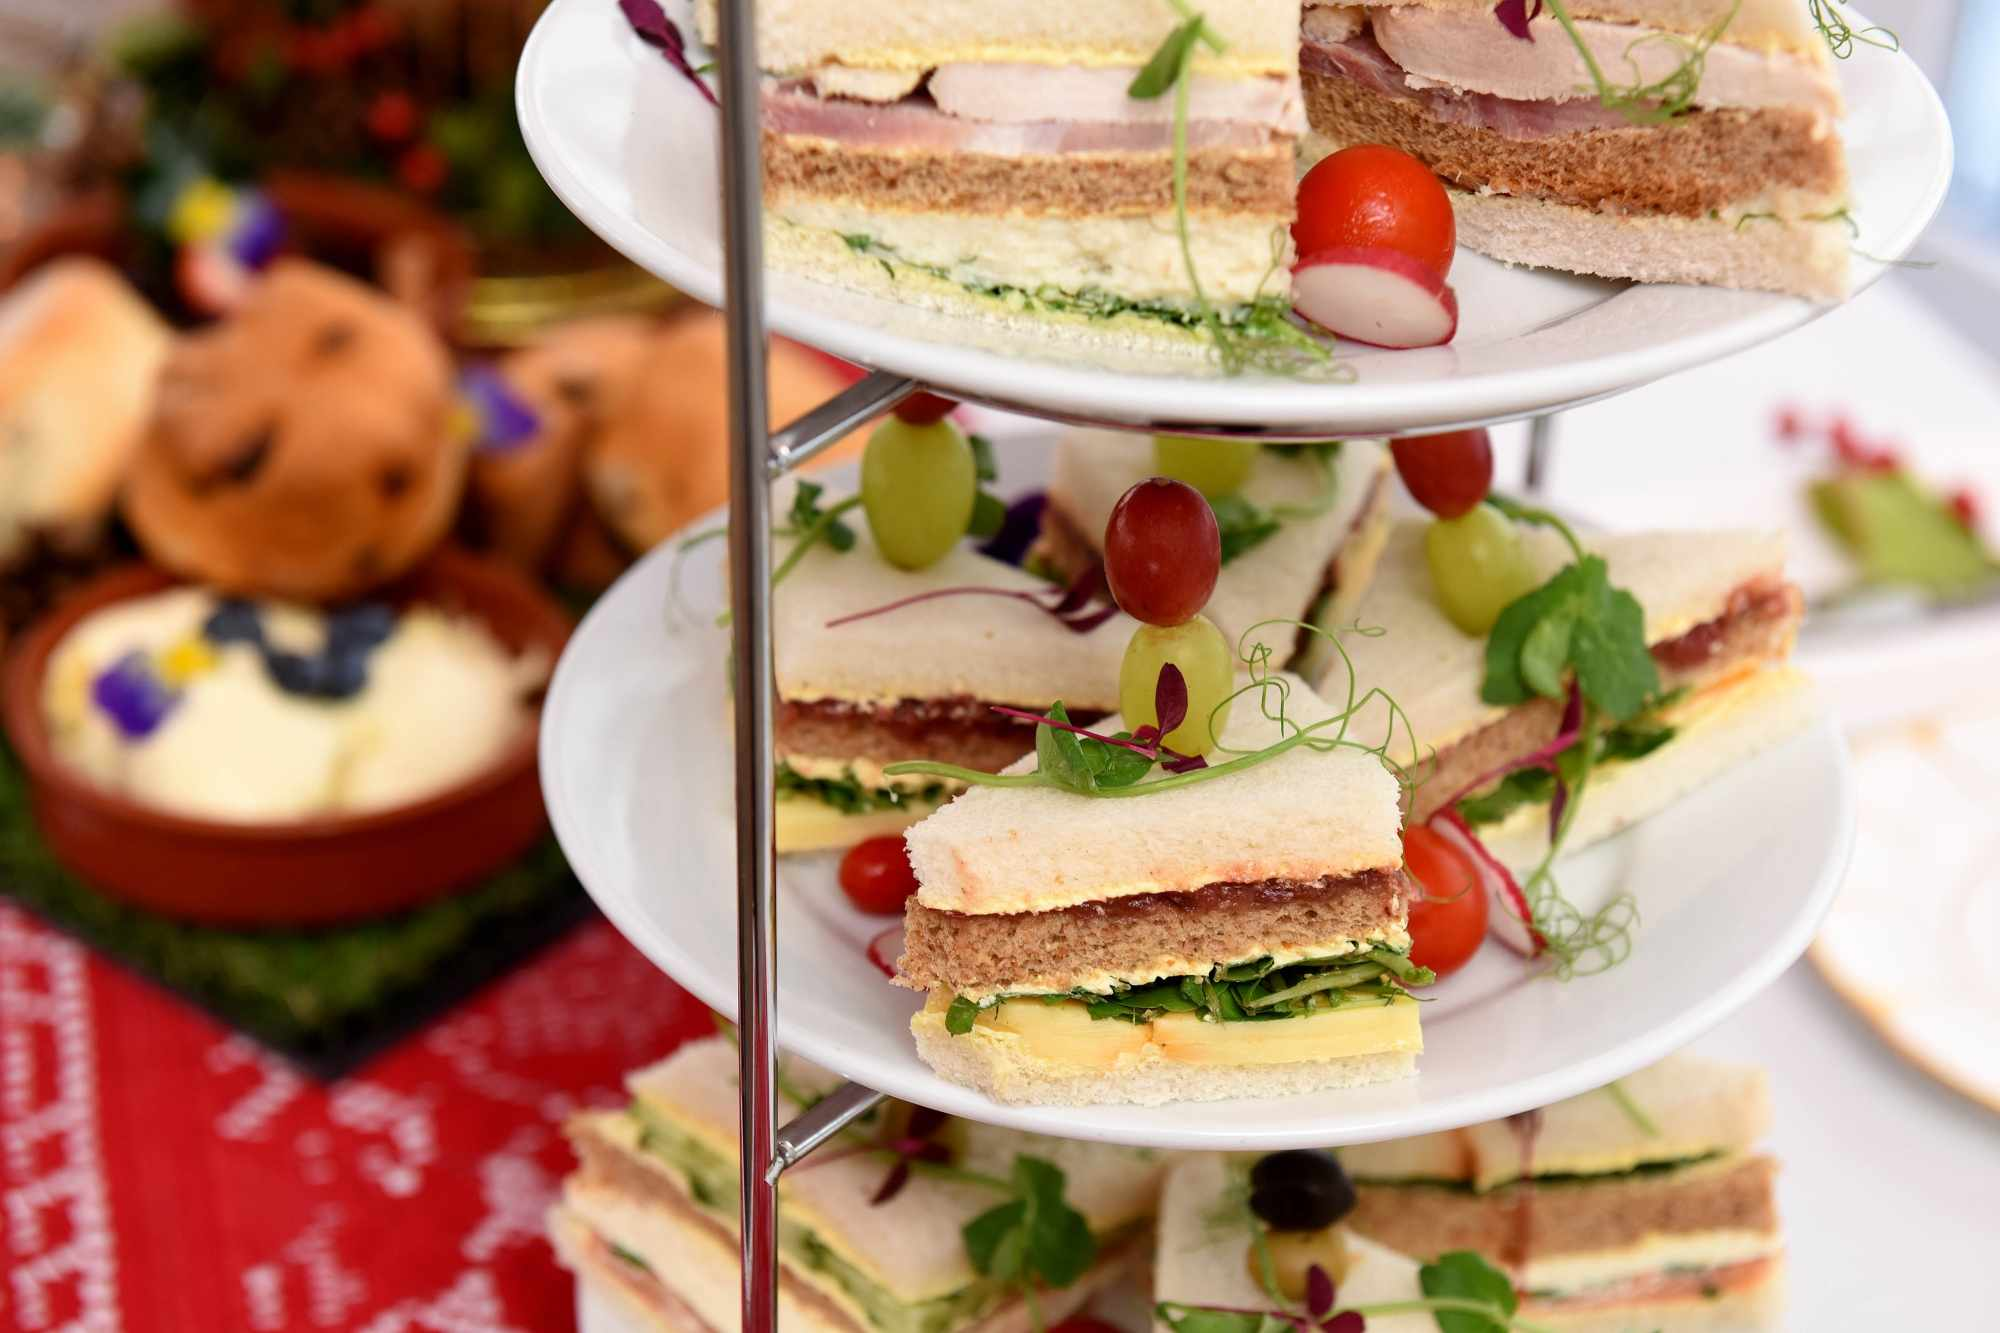 Where did afternoon tea come from?